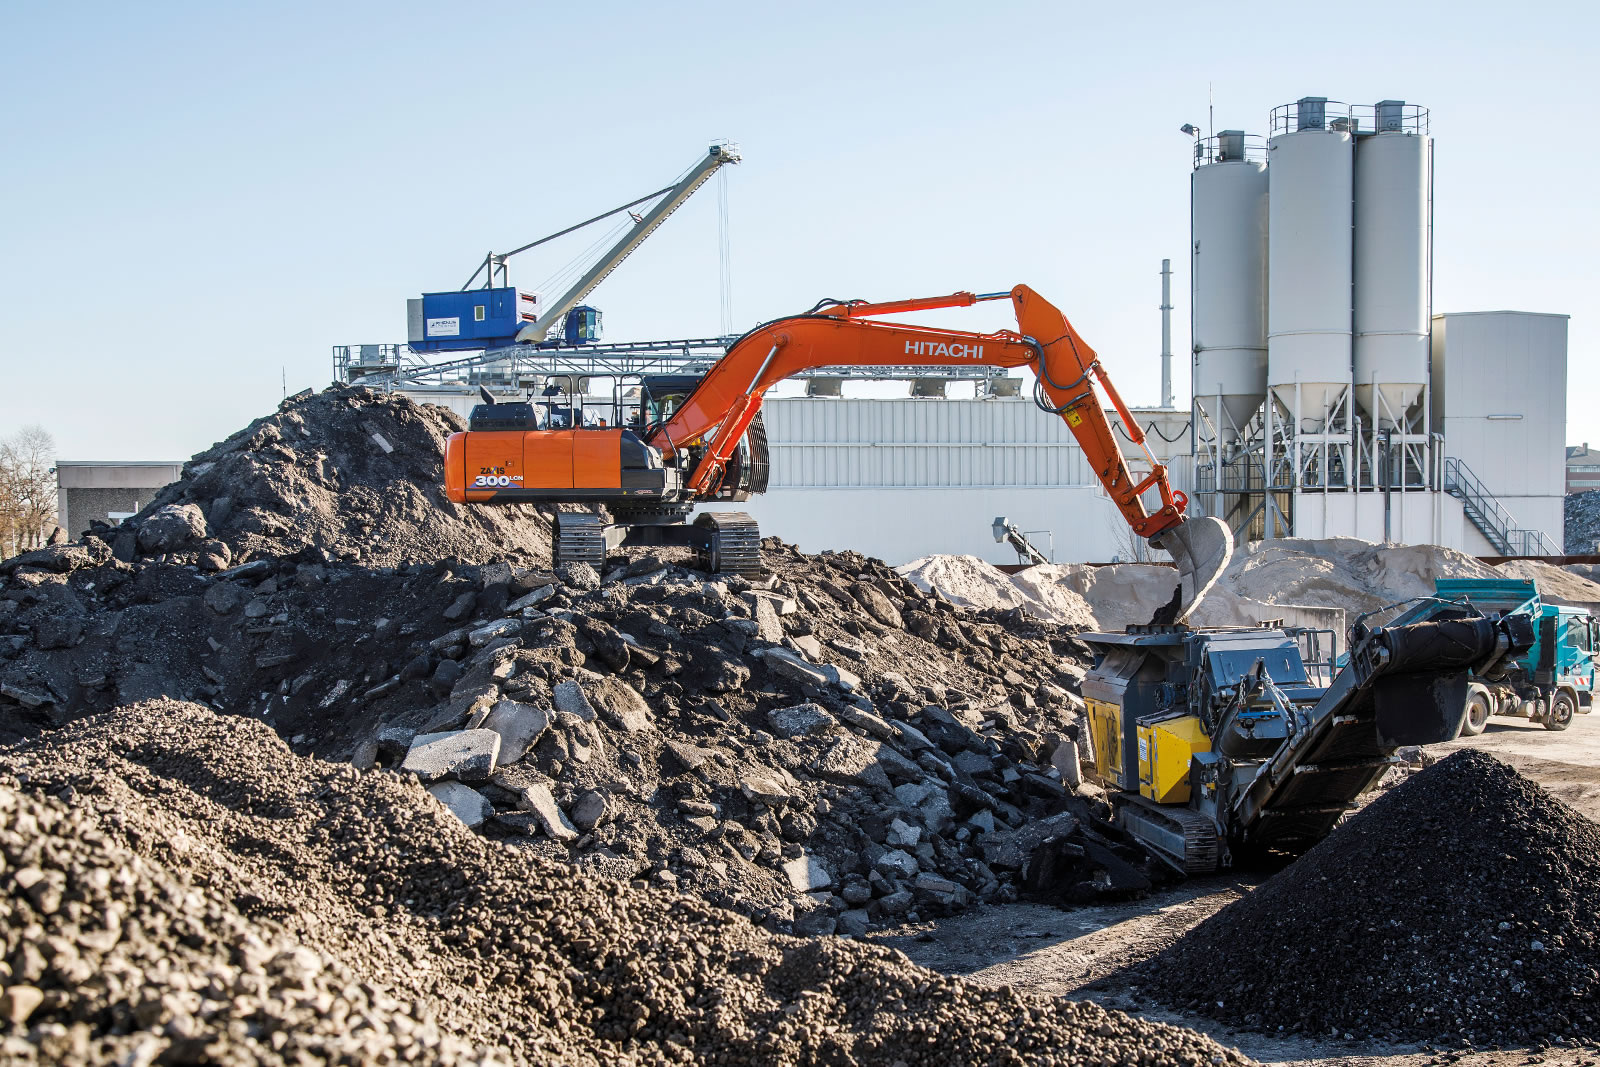 Hitachi ZX300LCN-6 excavator on a recycling sire in Karlsruhe